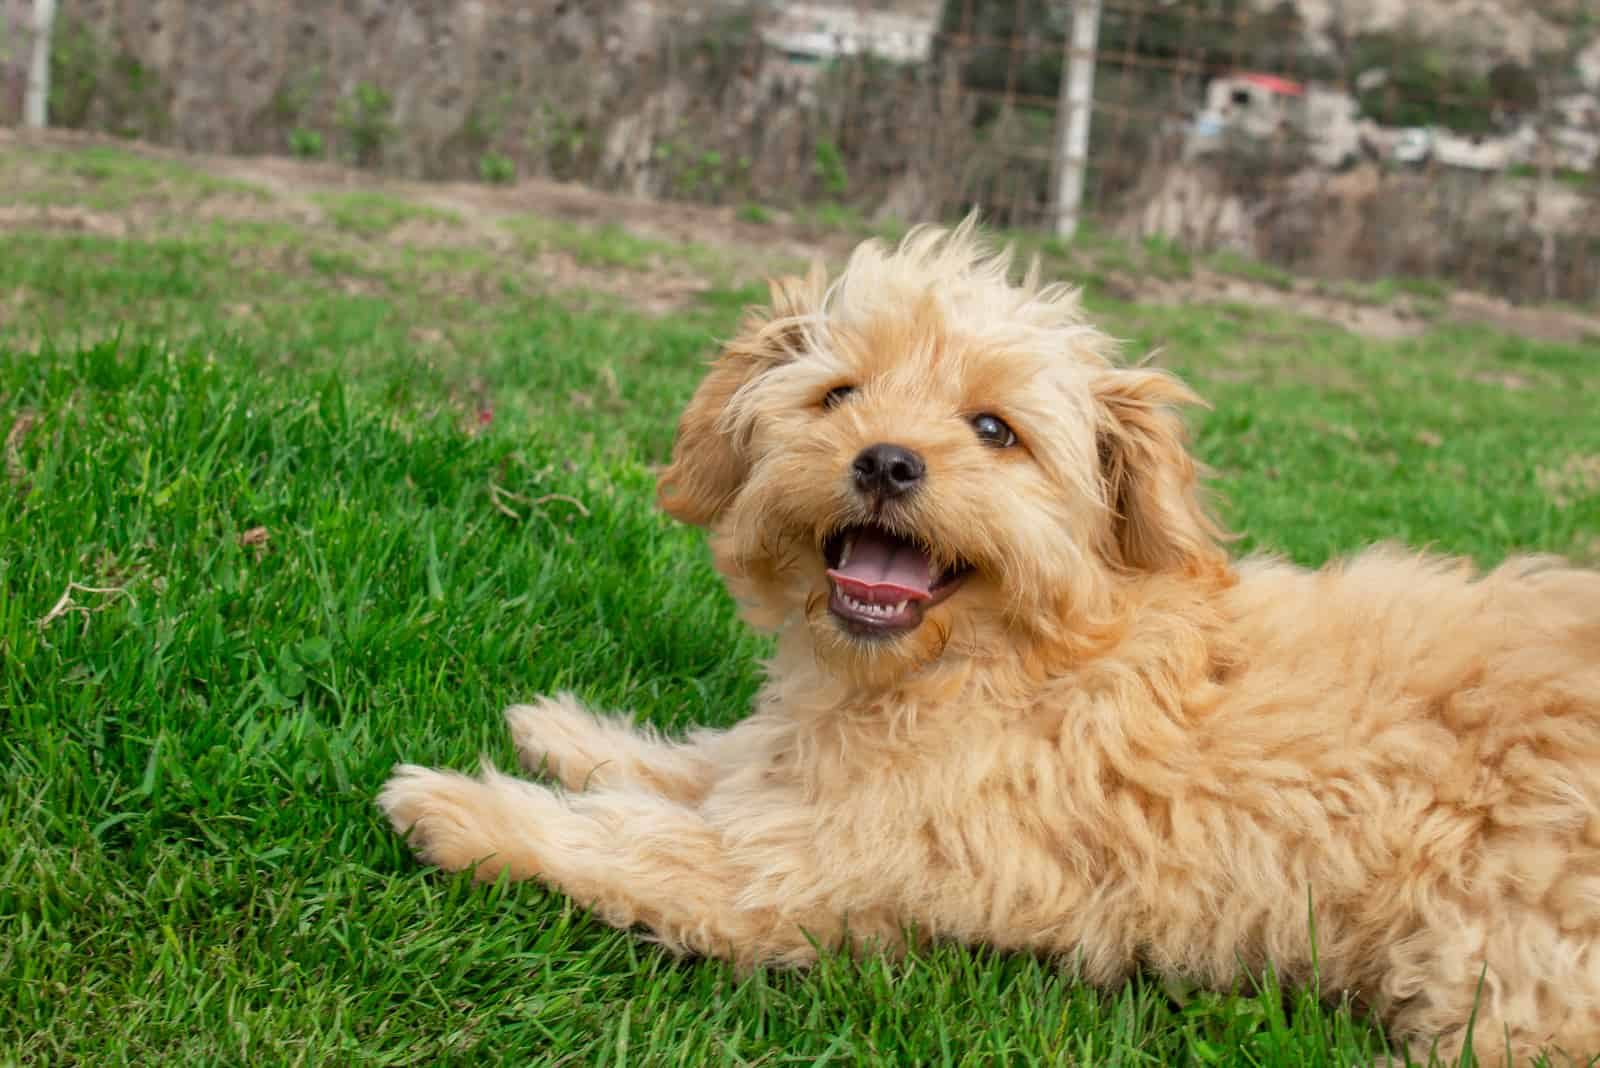 Mini Goldendoodle puppy dog walks outdoors on a green lawn